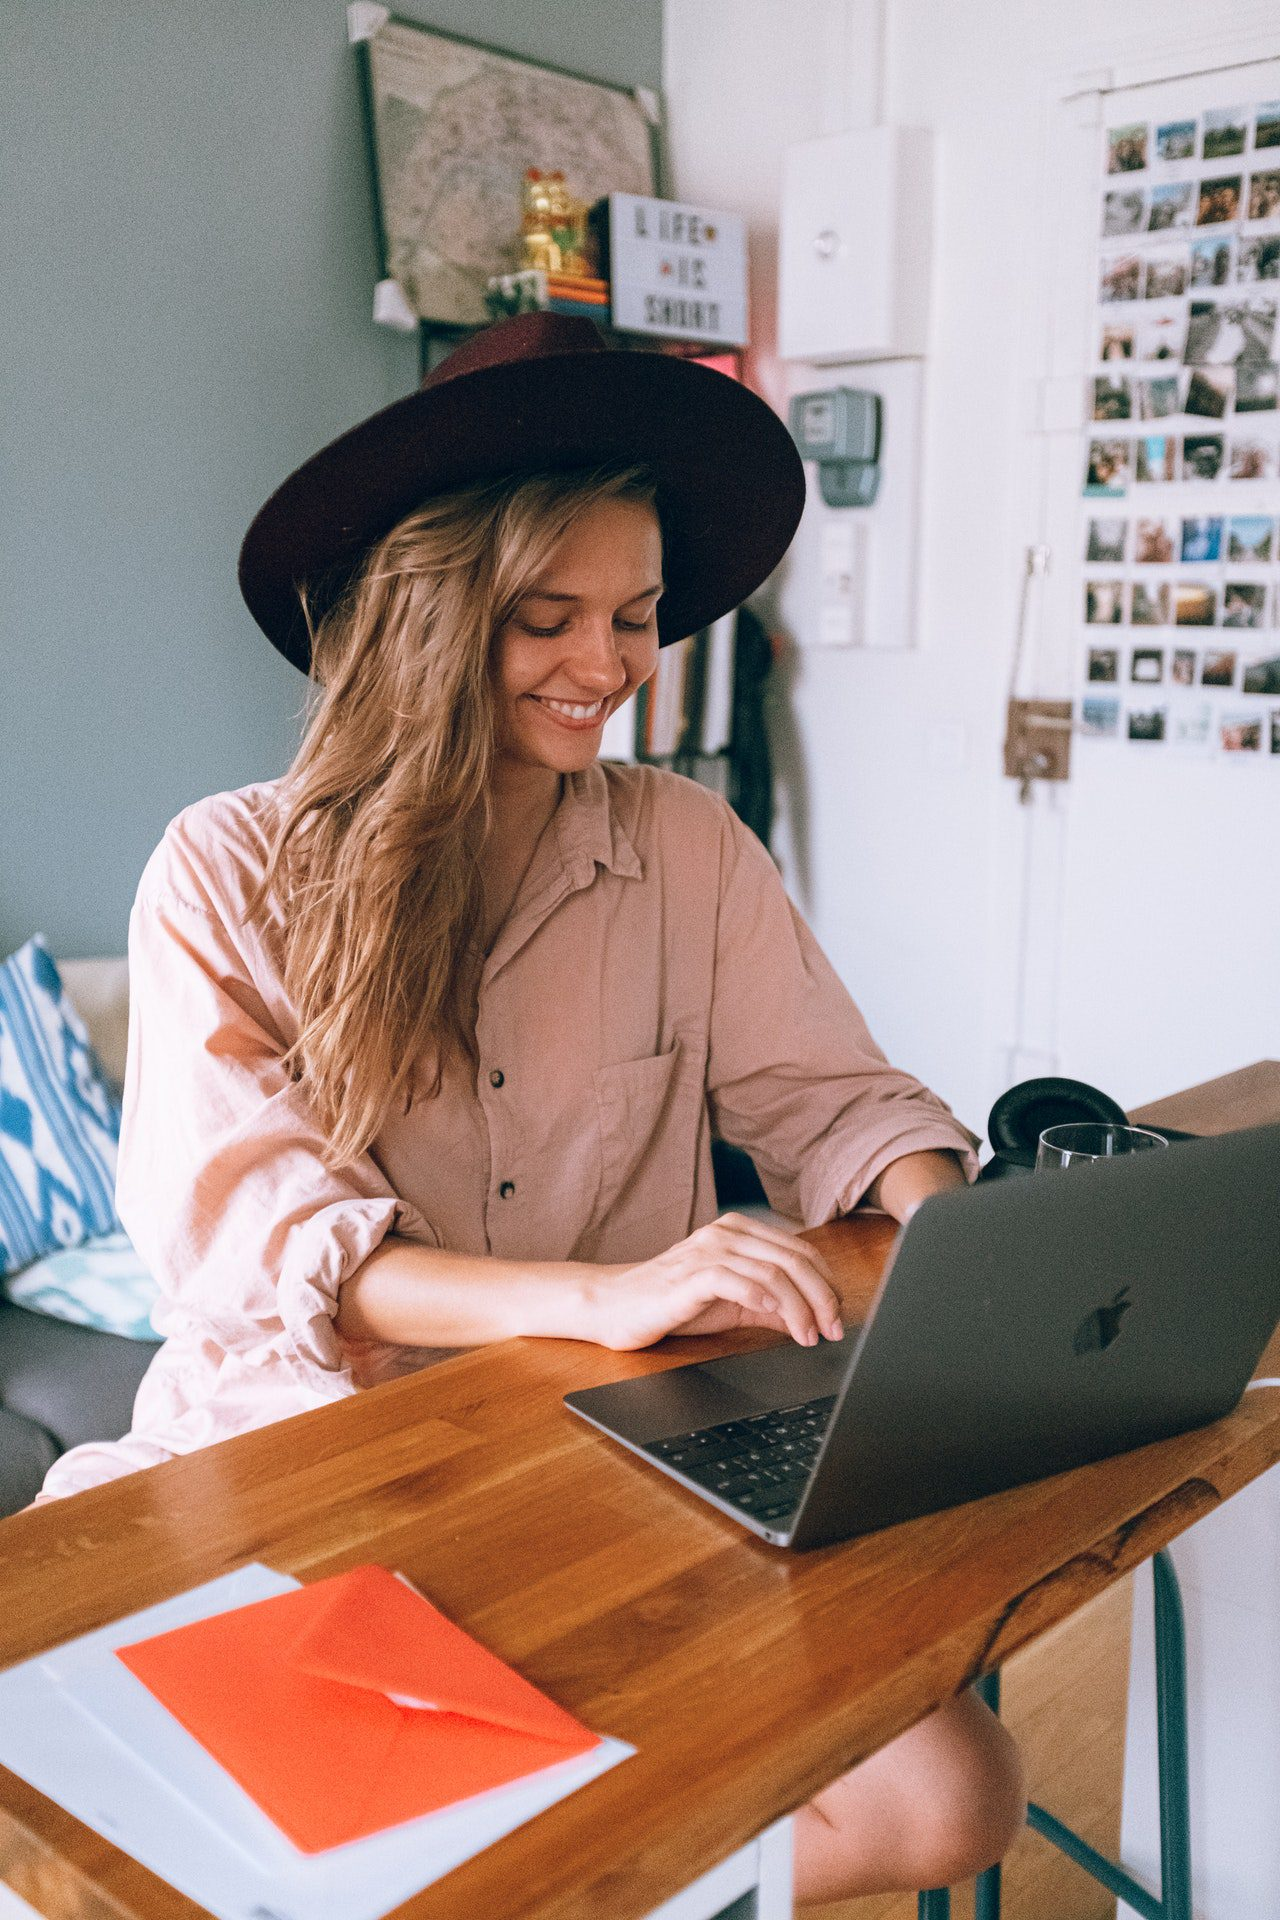 StrategyDriven Entrepreneurship Article | 4 Things to Consider Before Becoming a Freelancer